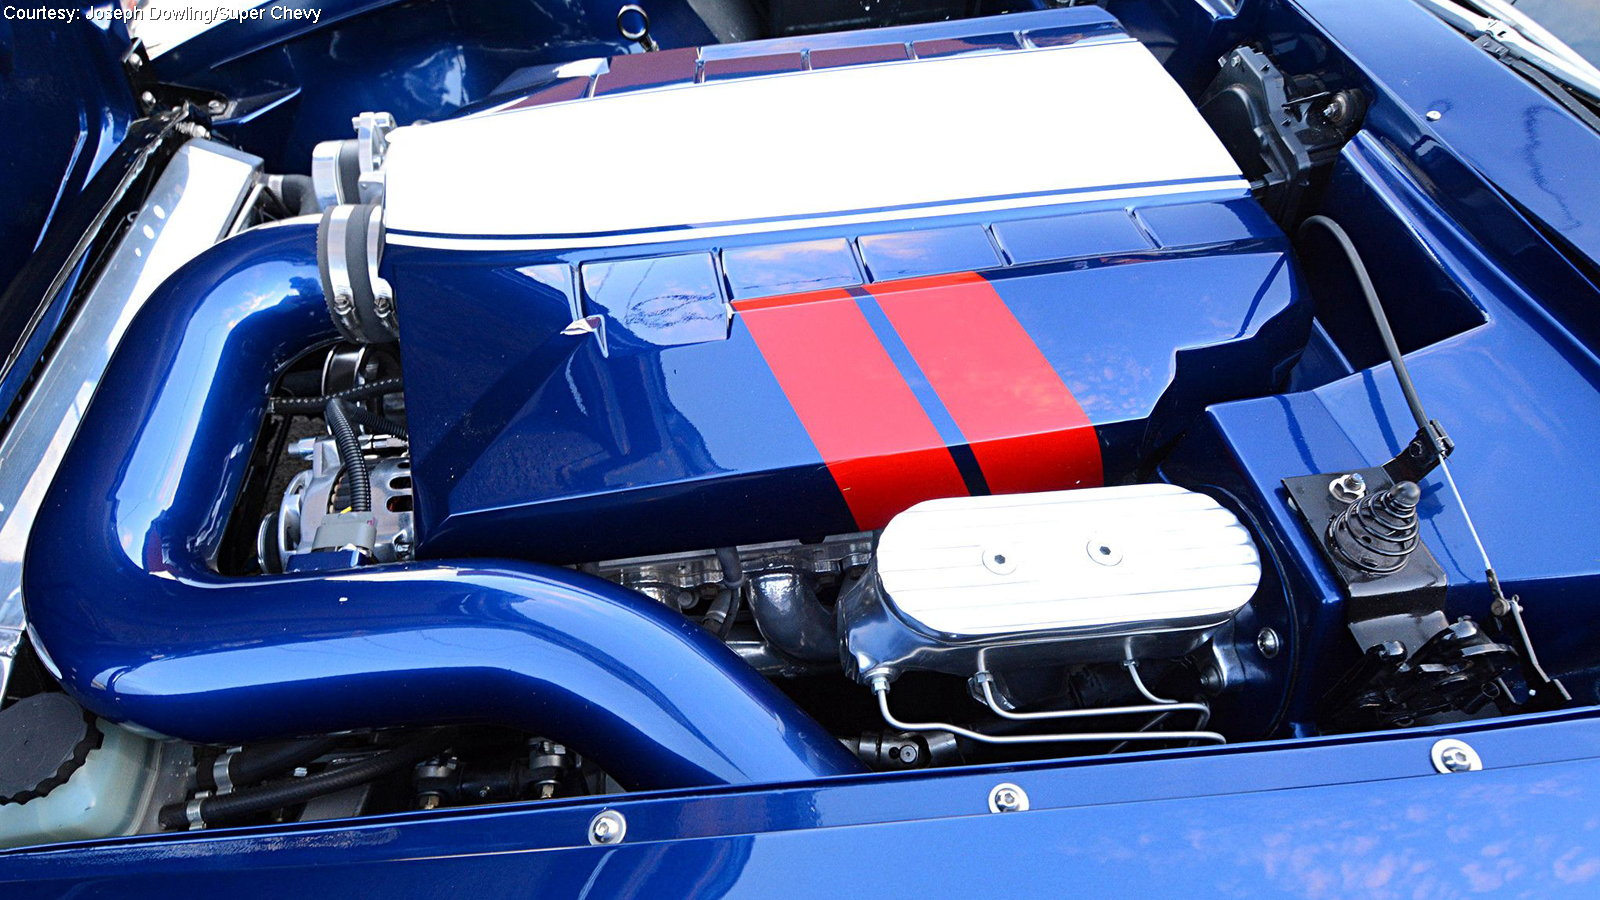 1979 Corvette with LS Power is a Grand Sport in Spirit